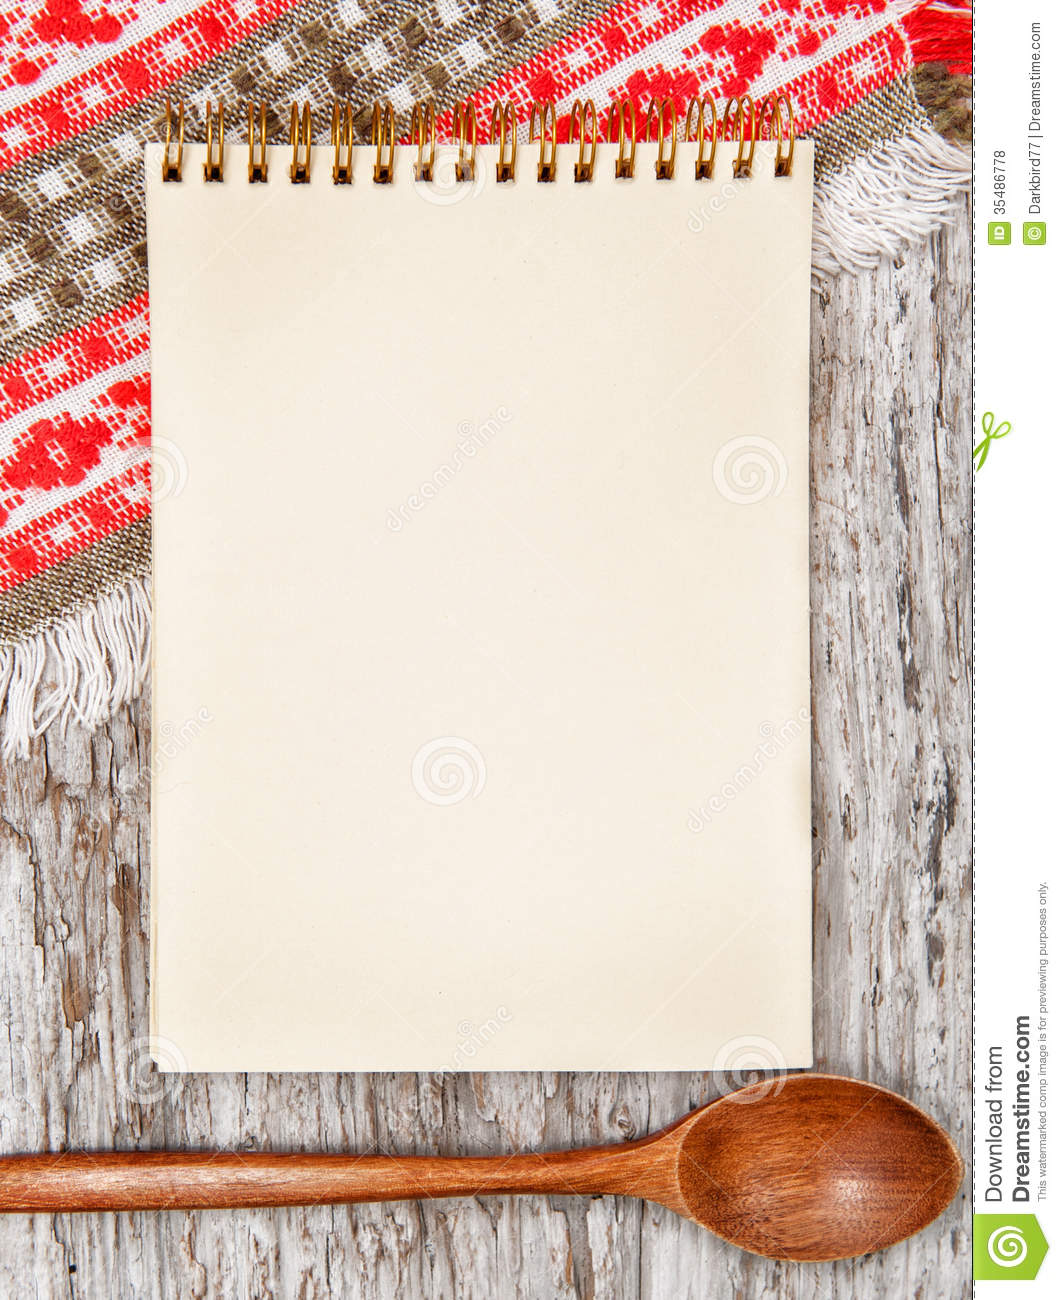 Cooking wood notebook powerpoint template cooking wood notebook kitchen cutting board and paper notebook stock photo cooking wood notebook powerpoint template toneelgroepblik Gallery